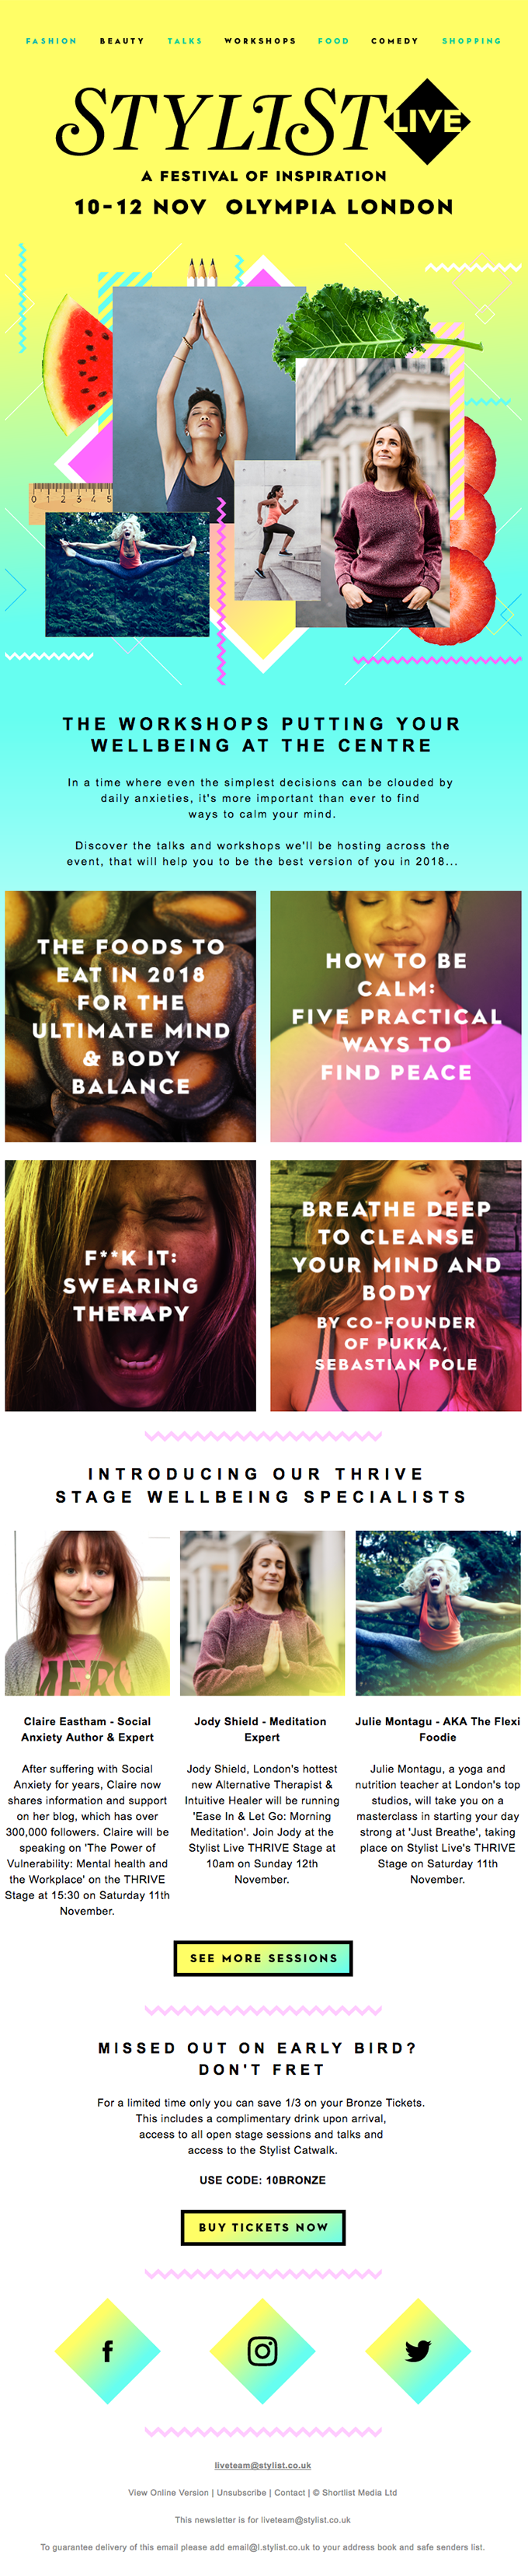 Introducing our wellbeing line up.